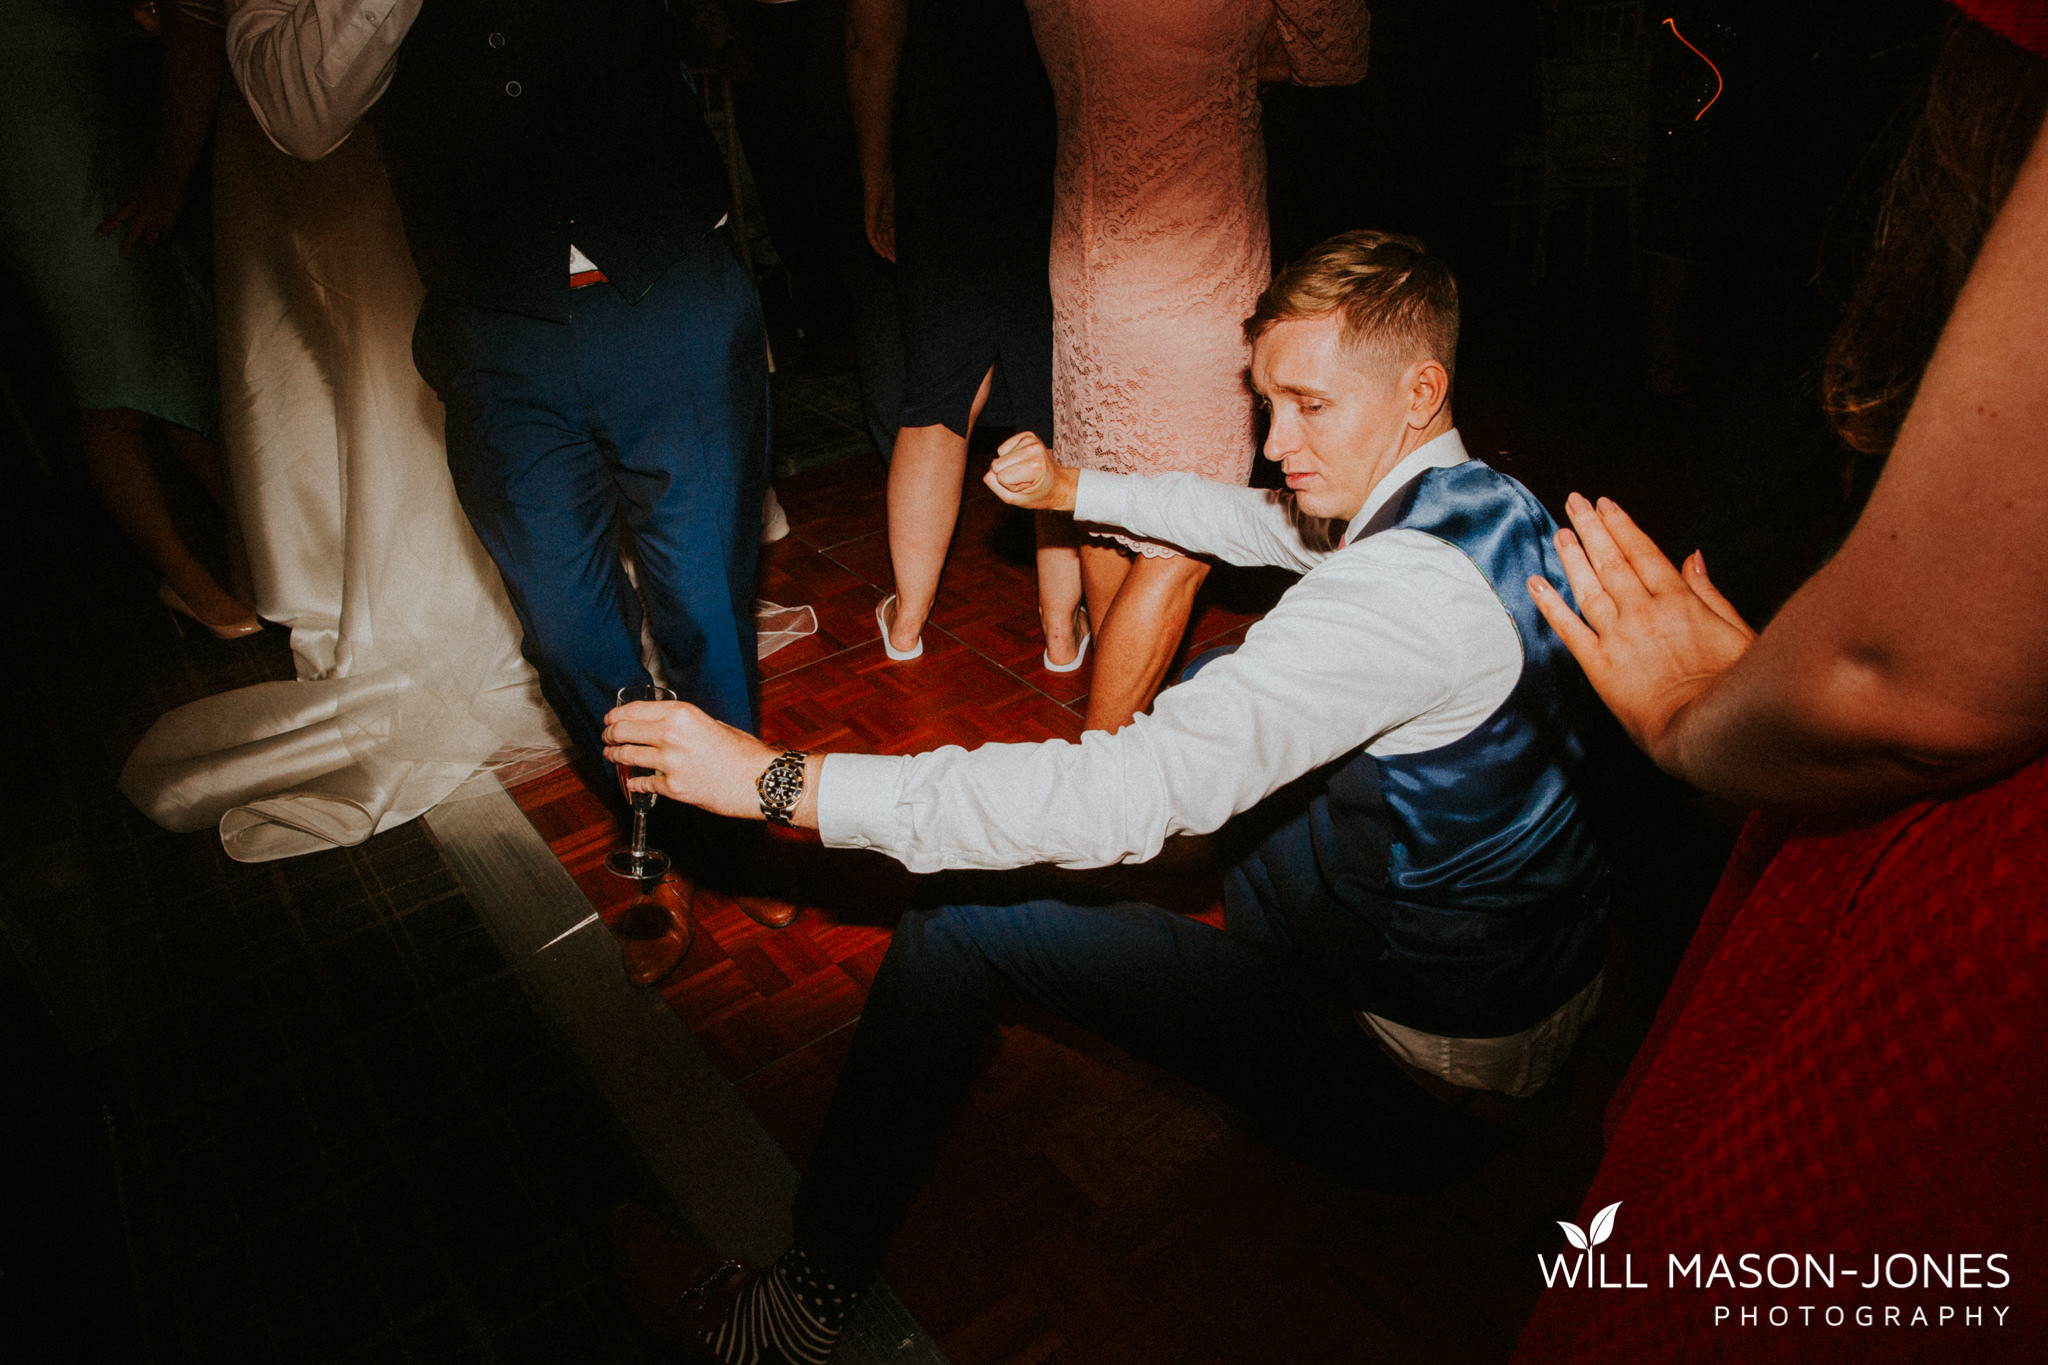 dancefloor-wedding-reception-singleton-lodge-fun-14.jpg